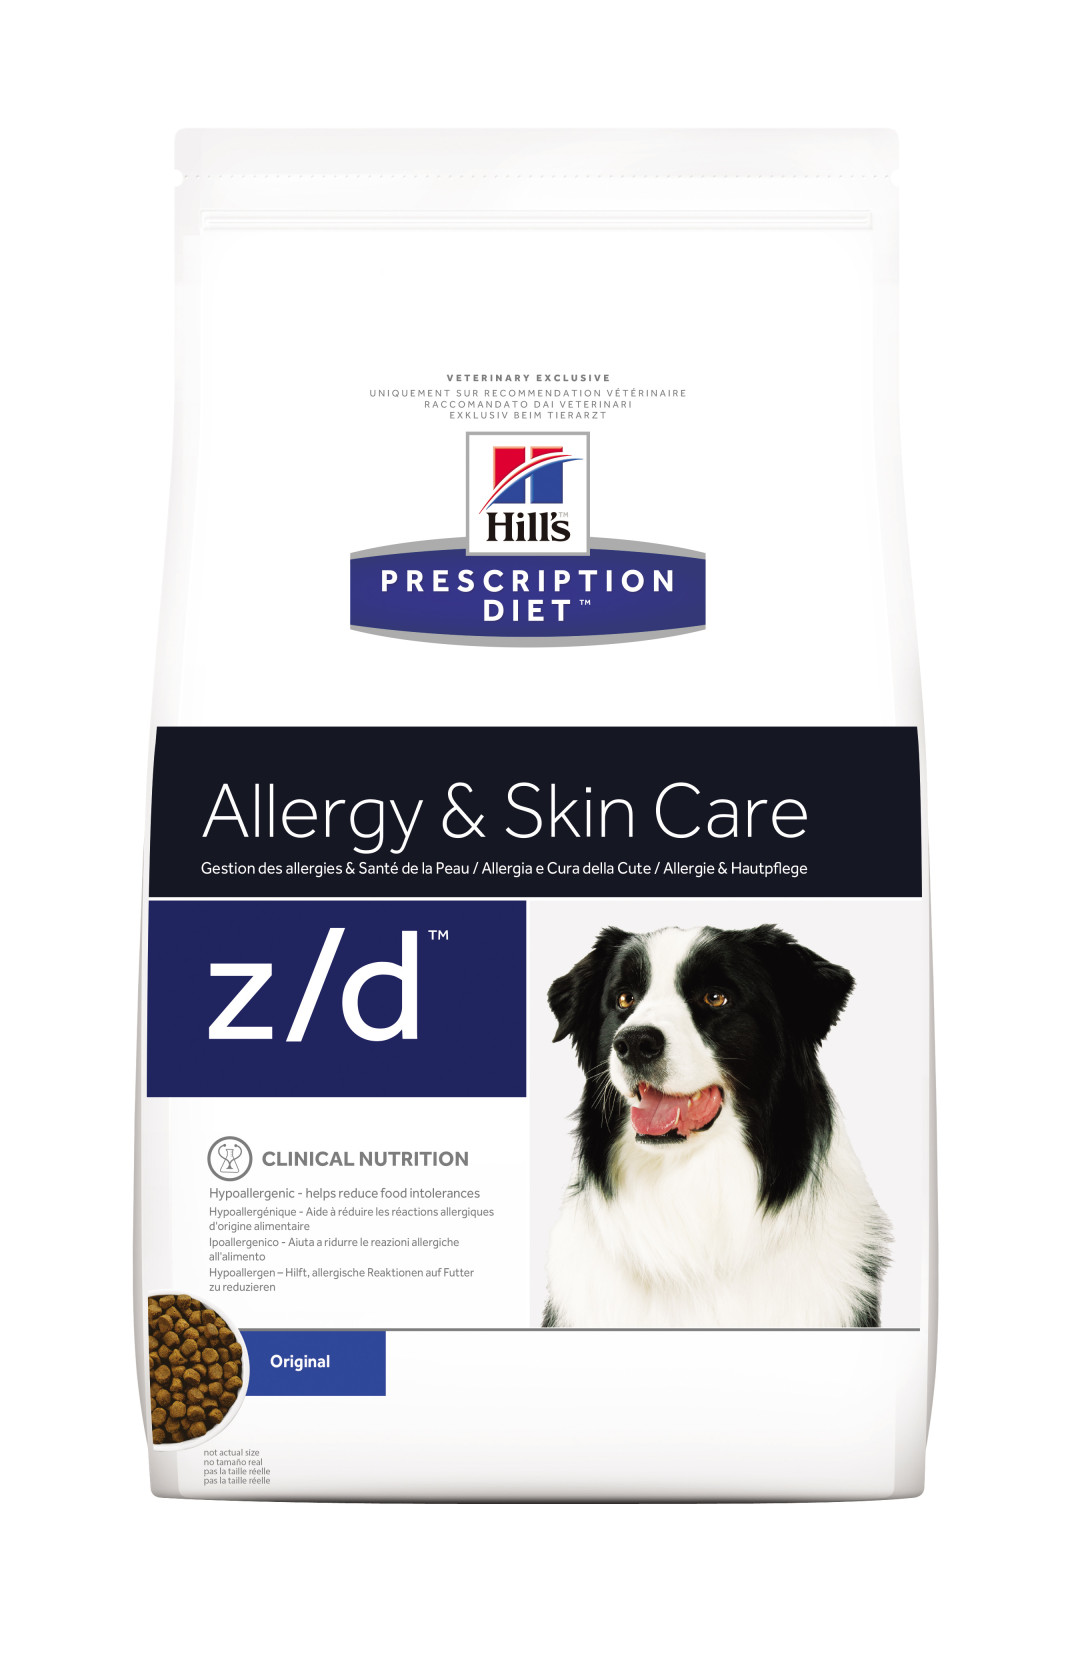 Hill's Prescription Diet hondenvoer z/d 3 kg